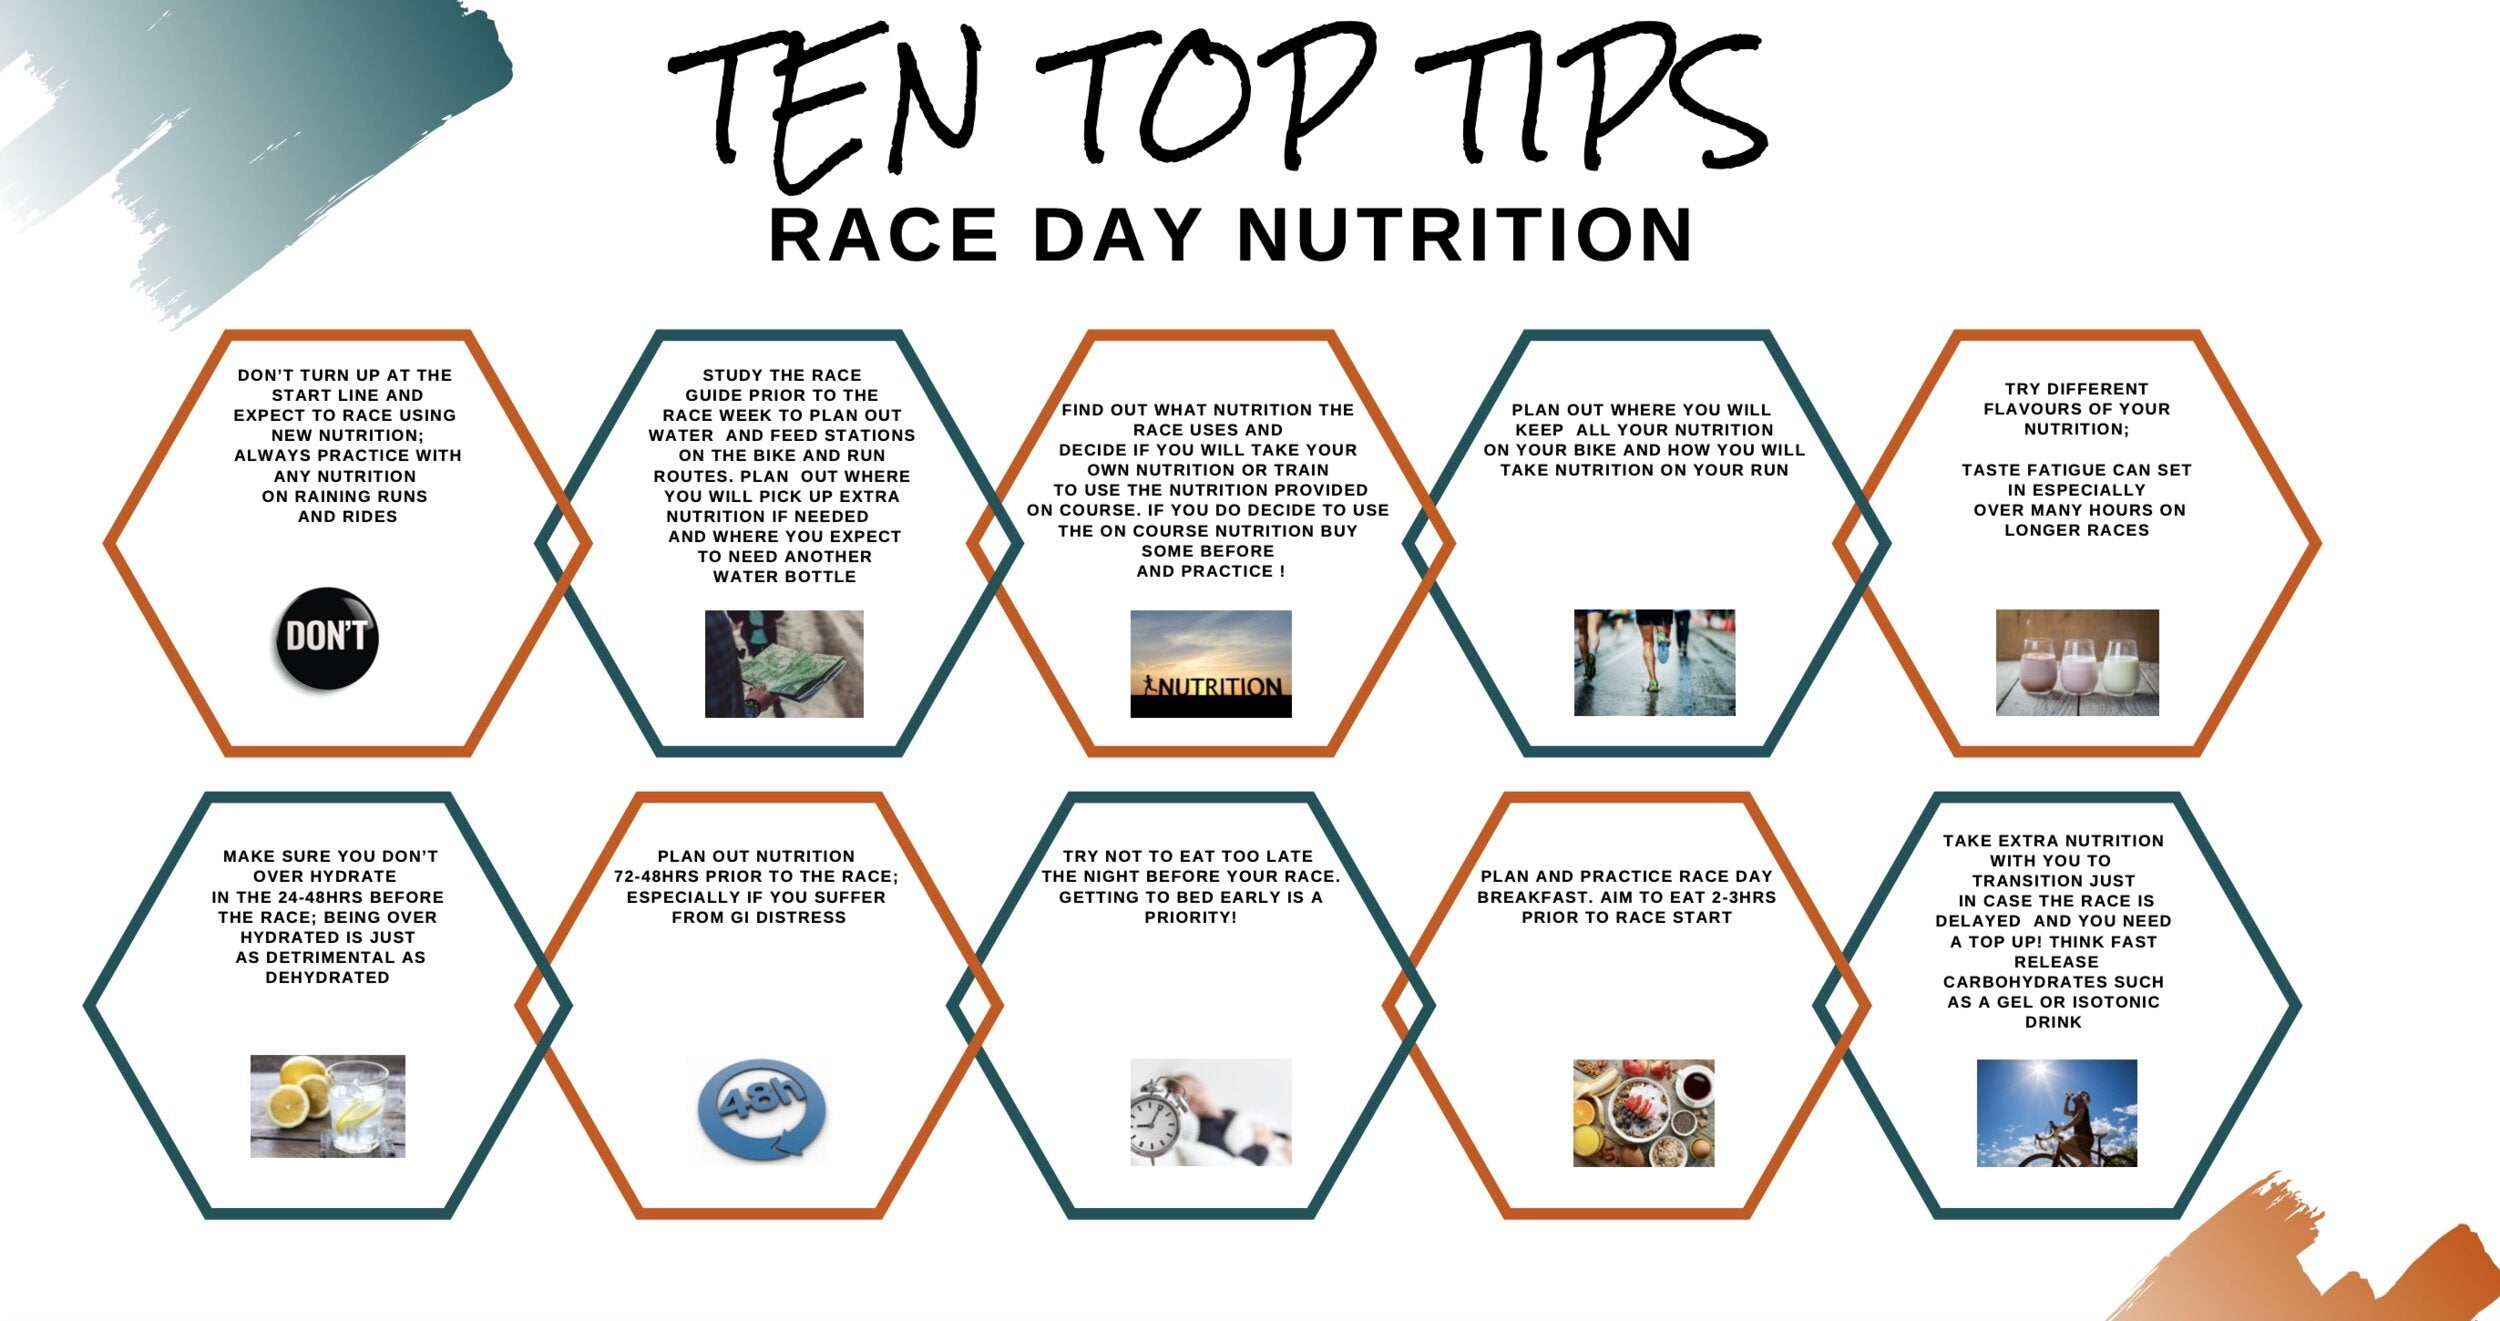 4th Discipline top 10 tips for triathlon race nutrition